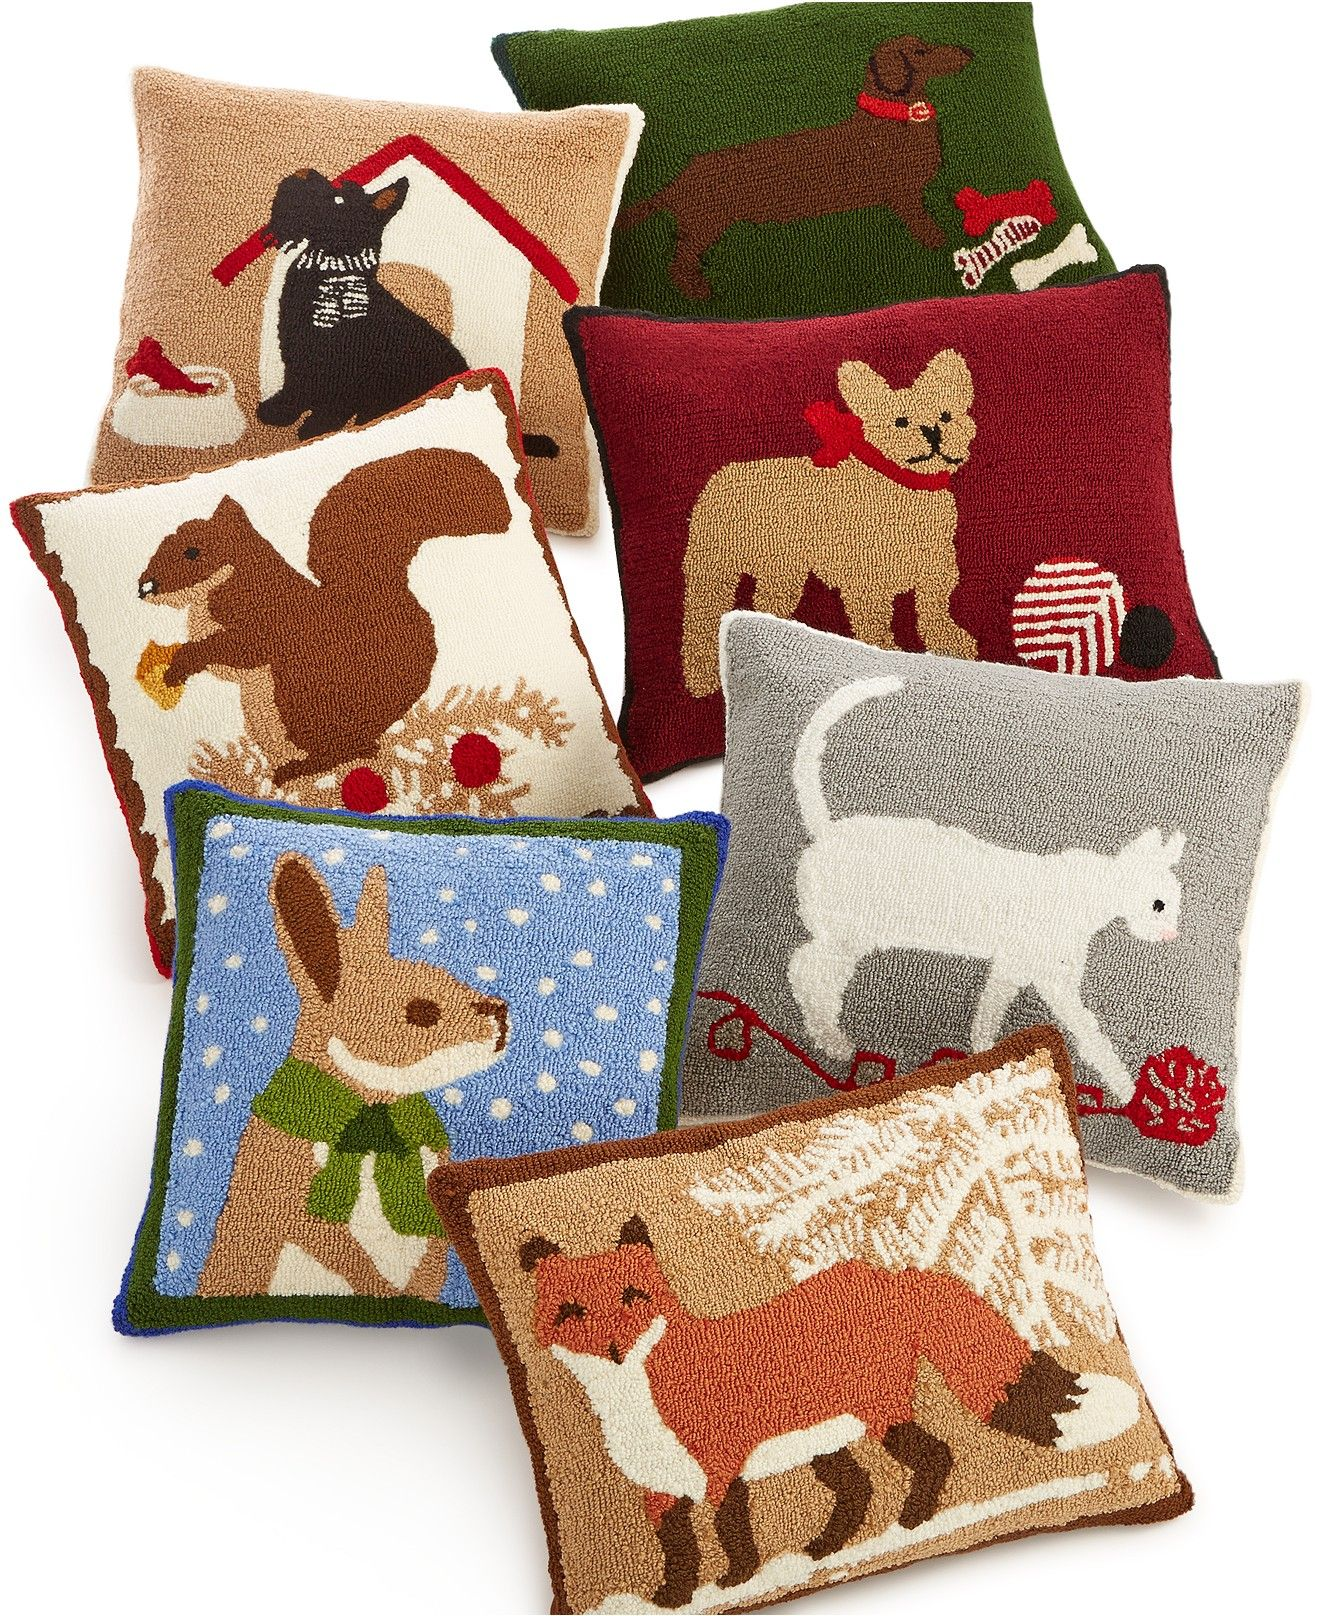 Macy's Decorative Pillows Mesmerizing Martha Stewart Collection Bunny Decorative Pillow Only At Macy's Design Ideas